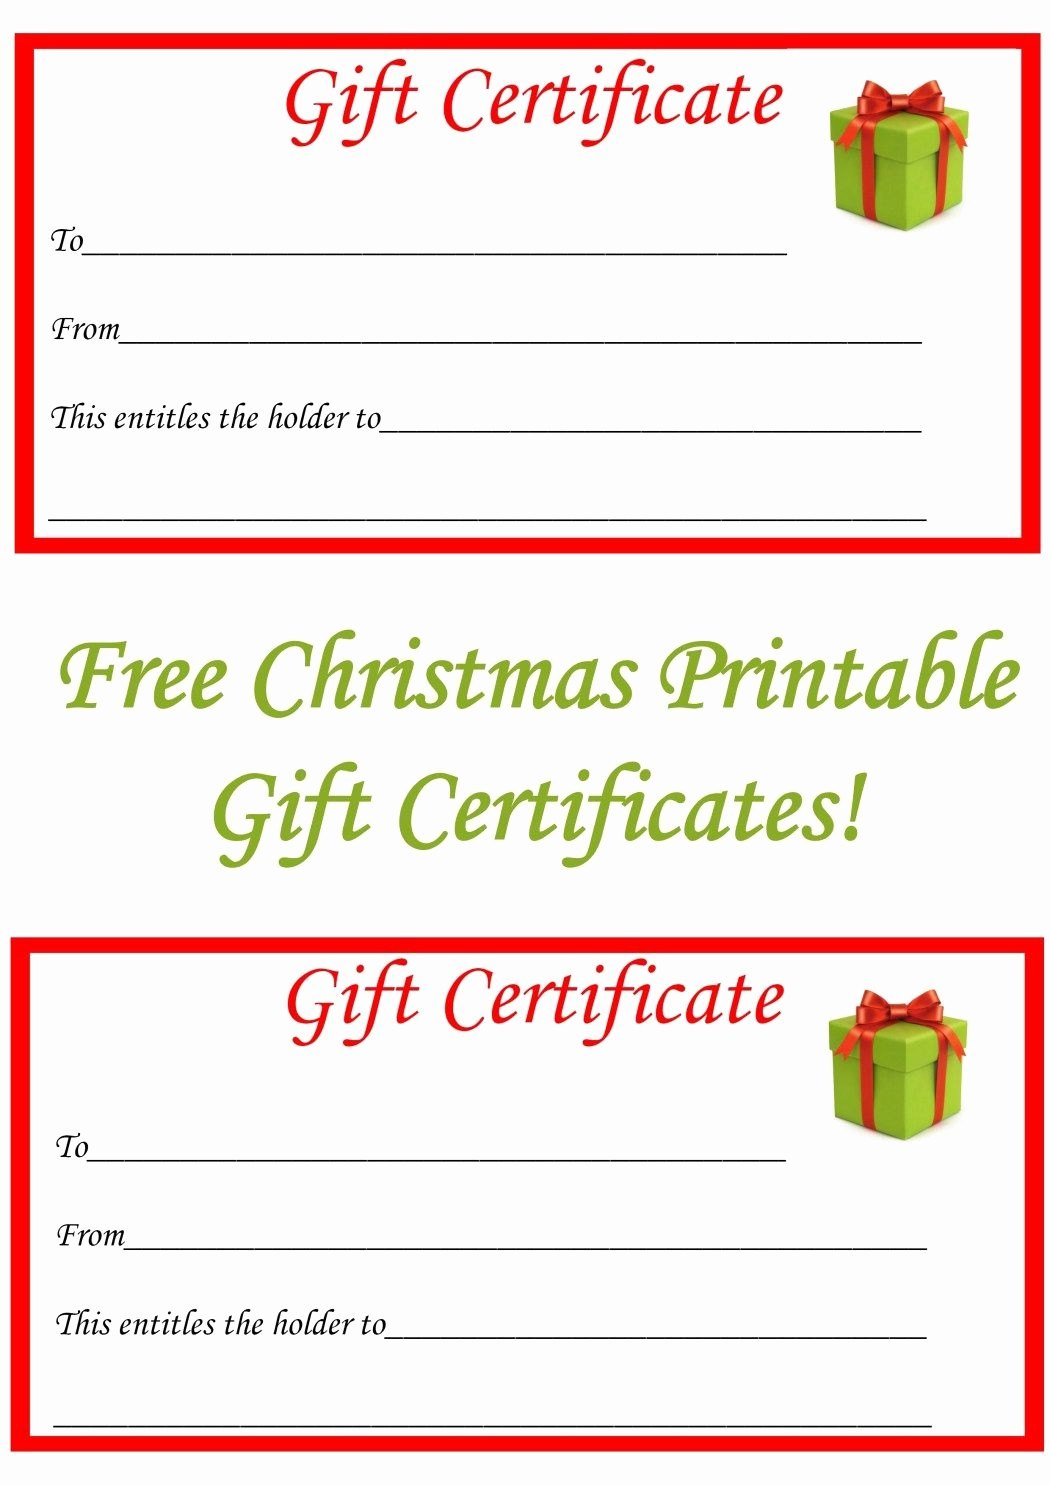 Gift Card Templates Free Printable Beautiful Best 25 Printable T Certificates Ideas On Pinterest